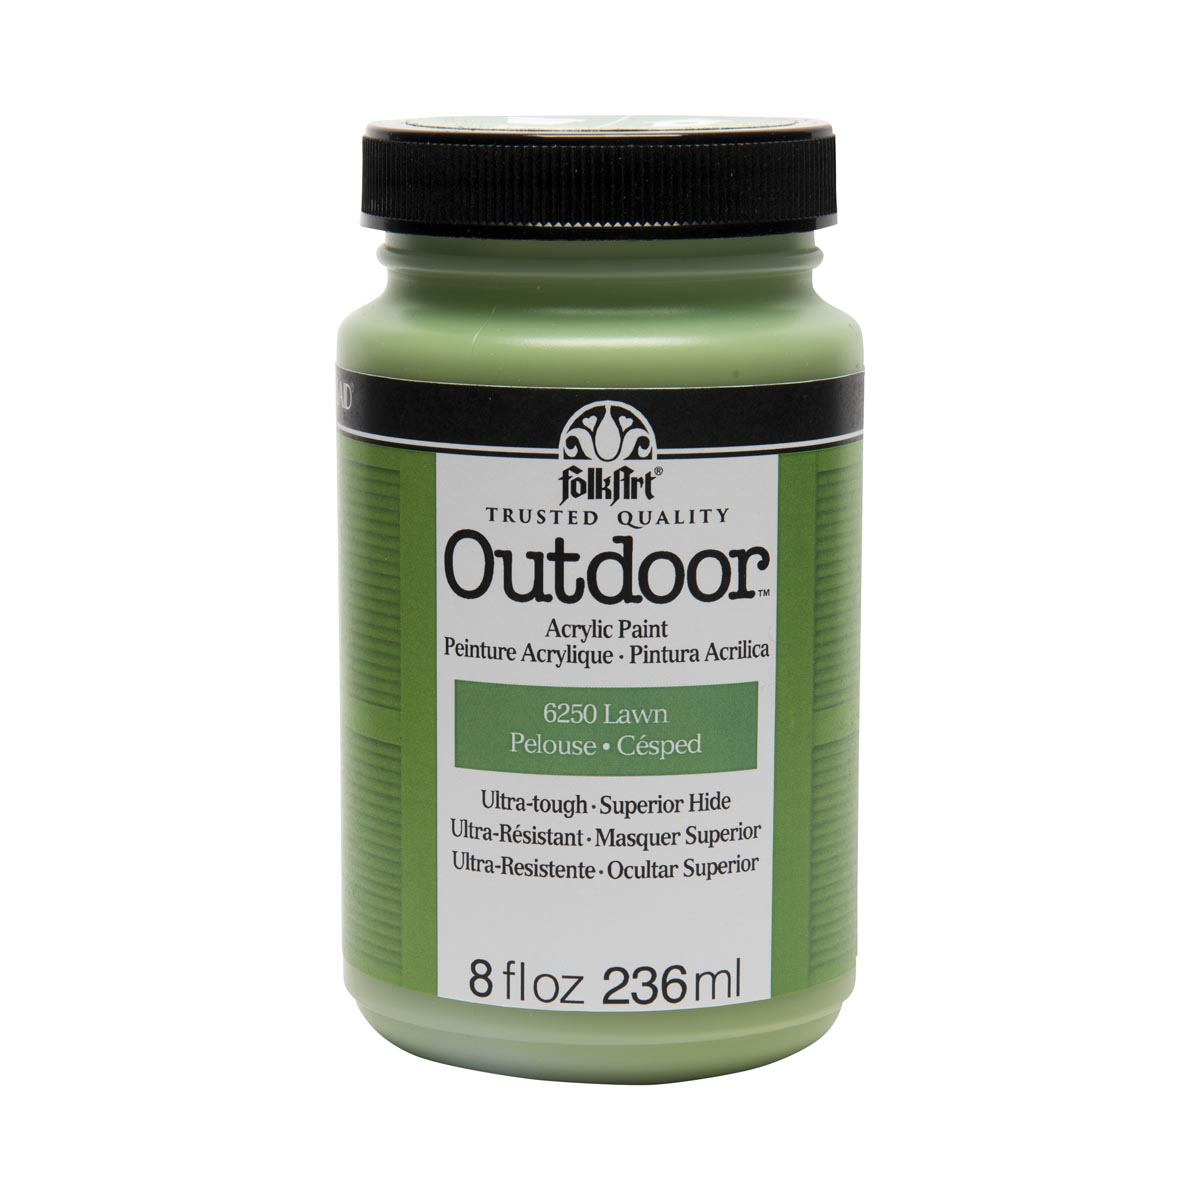 FolkArt ® Outdoor™ Acrylic Colors - Lawn, 8 oz. - 6250